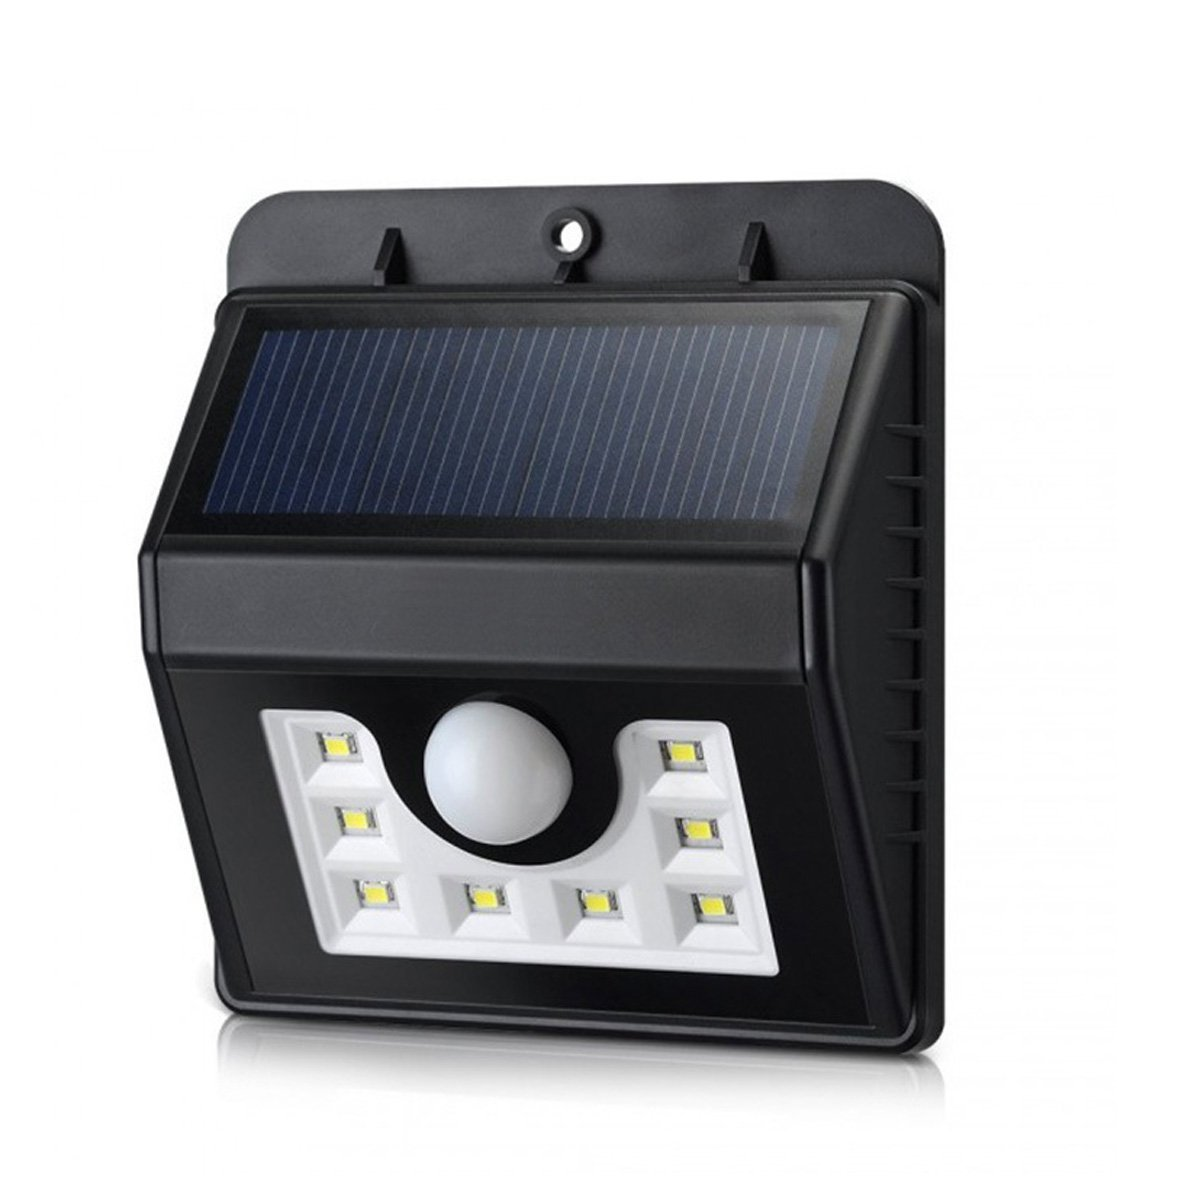 Solar Light Outdoor,WONFAST Waterproof Solar Power 8 LED Security Lighting Motion Sensor Wall Light for Garden Diveway Patio Fencing Path (1-Pack)